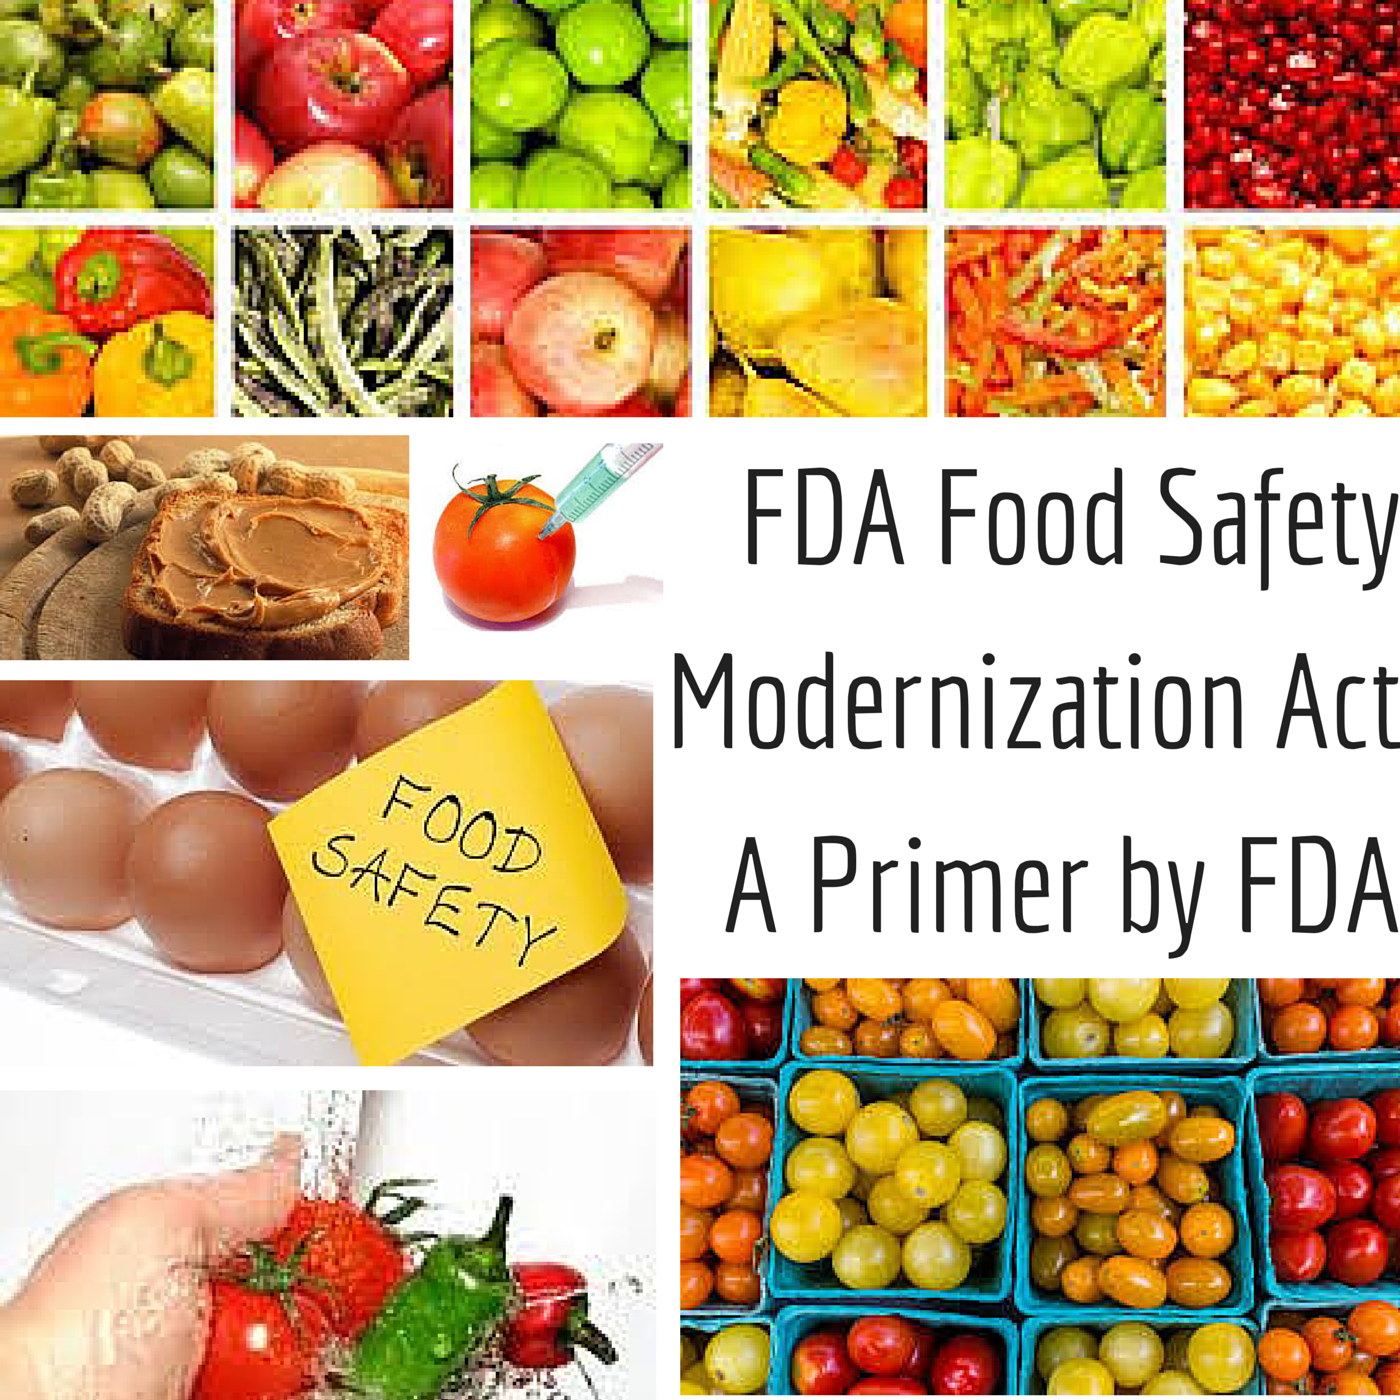 Fda Foodsafety Modernization Act A Primer By Fda It Is Highly Important For Food Exporters Importers And Producers With Images Food Safety Regulatory Compliance Food